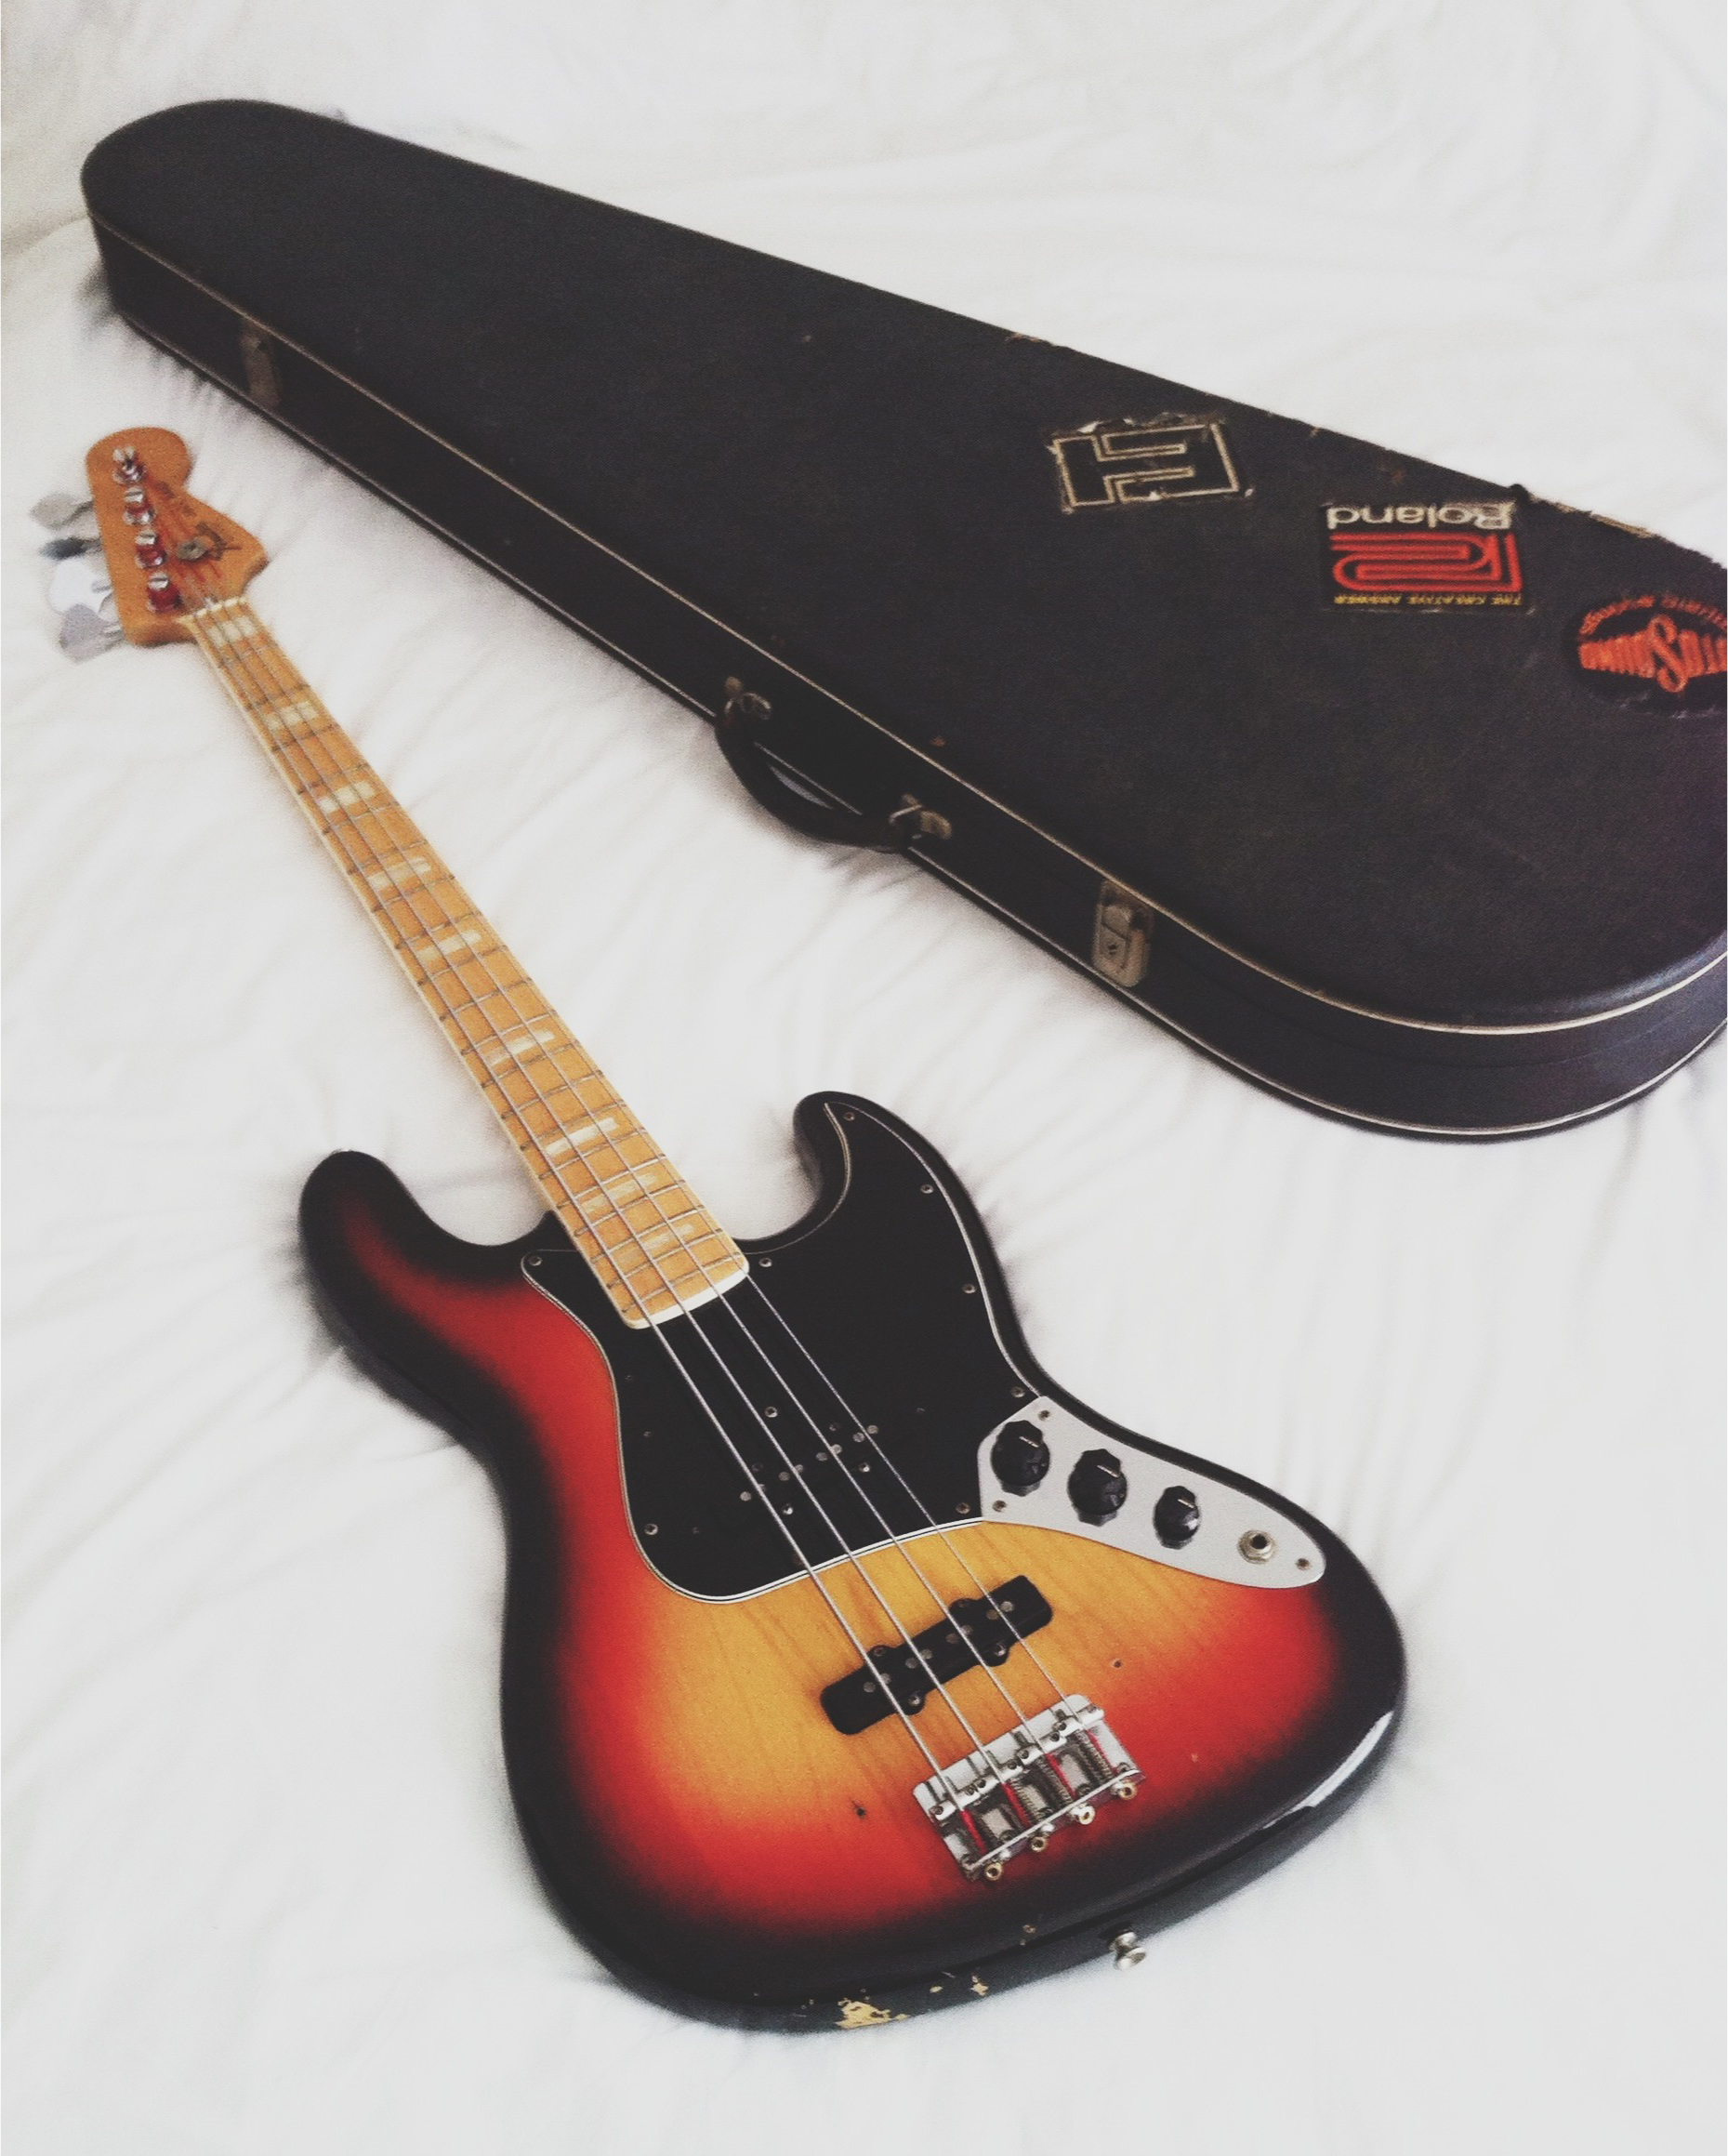 '70s Fender Jazz Bass